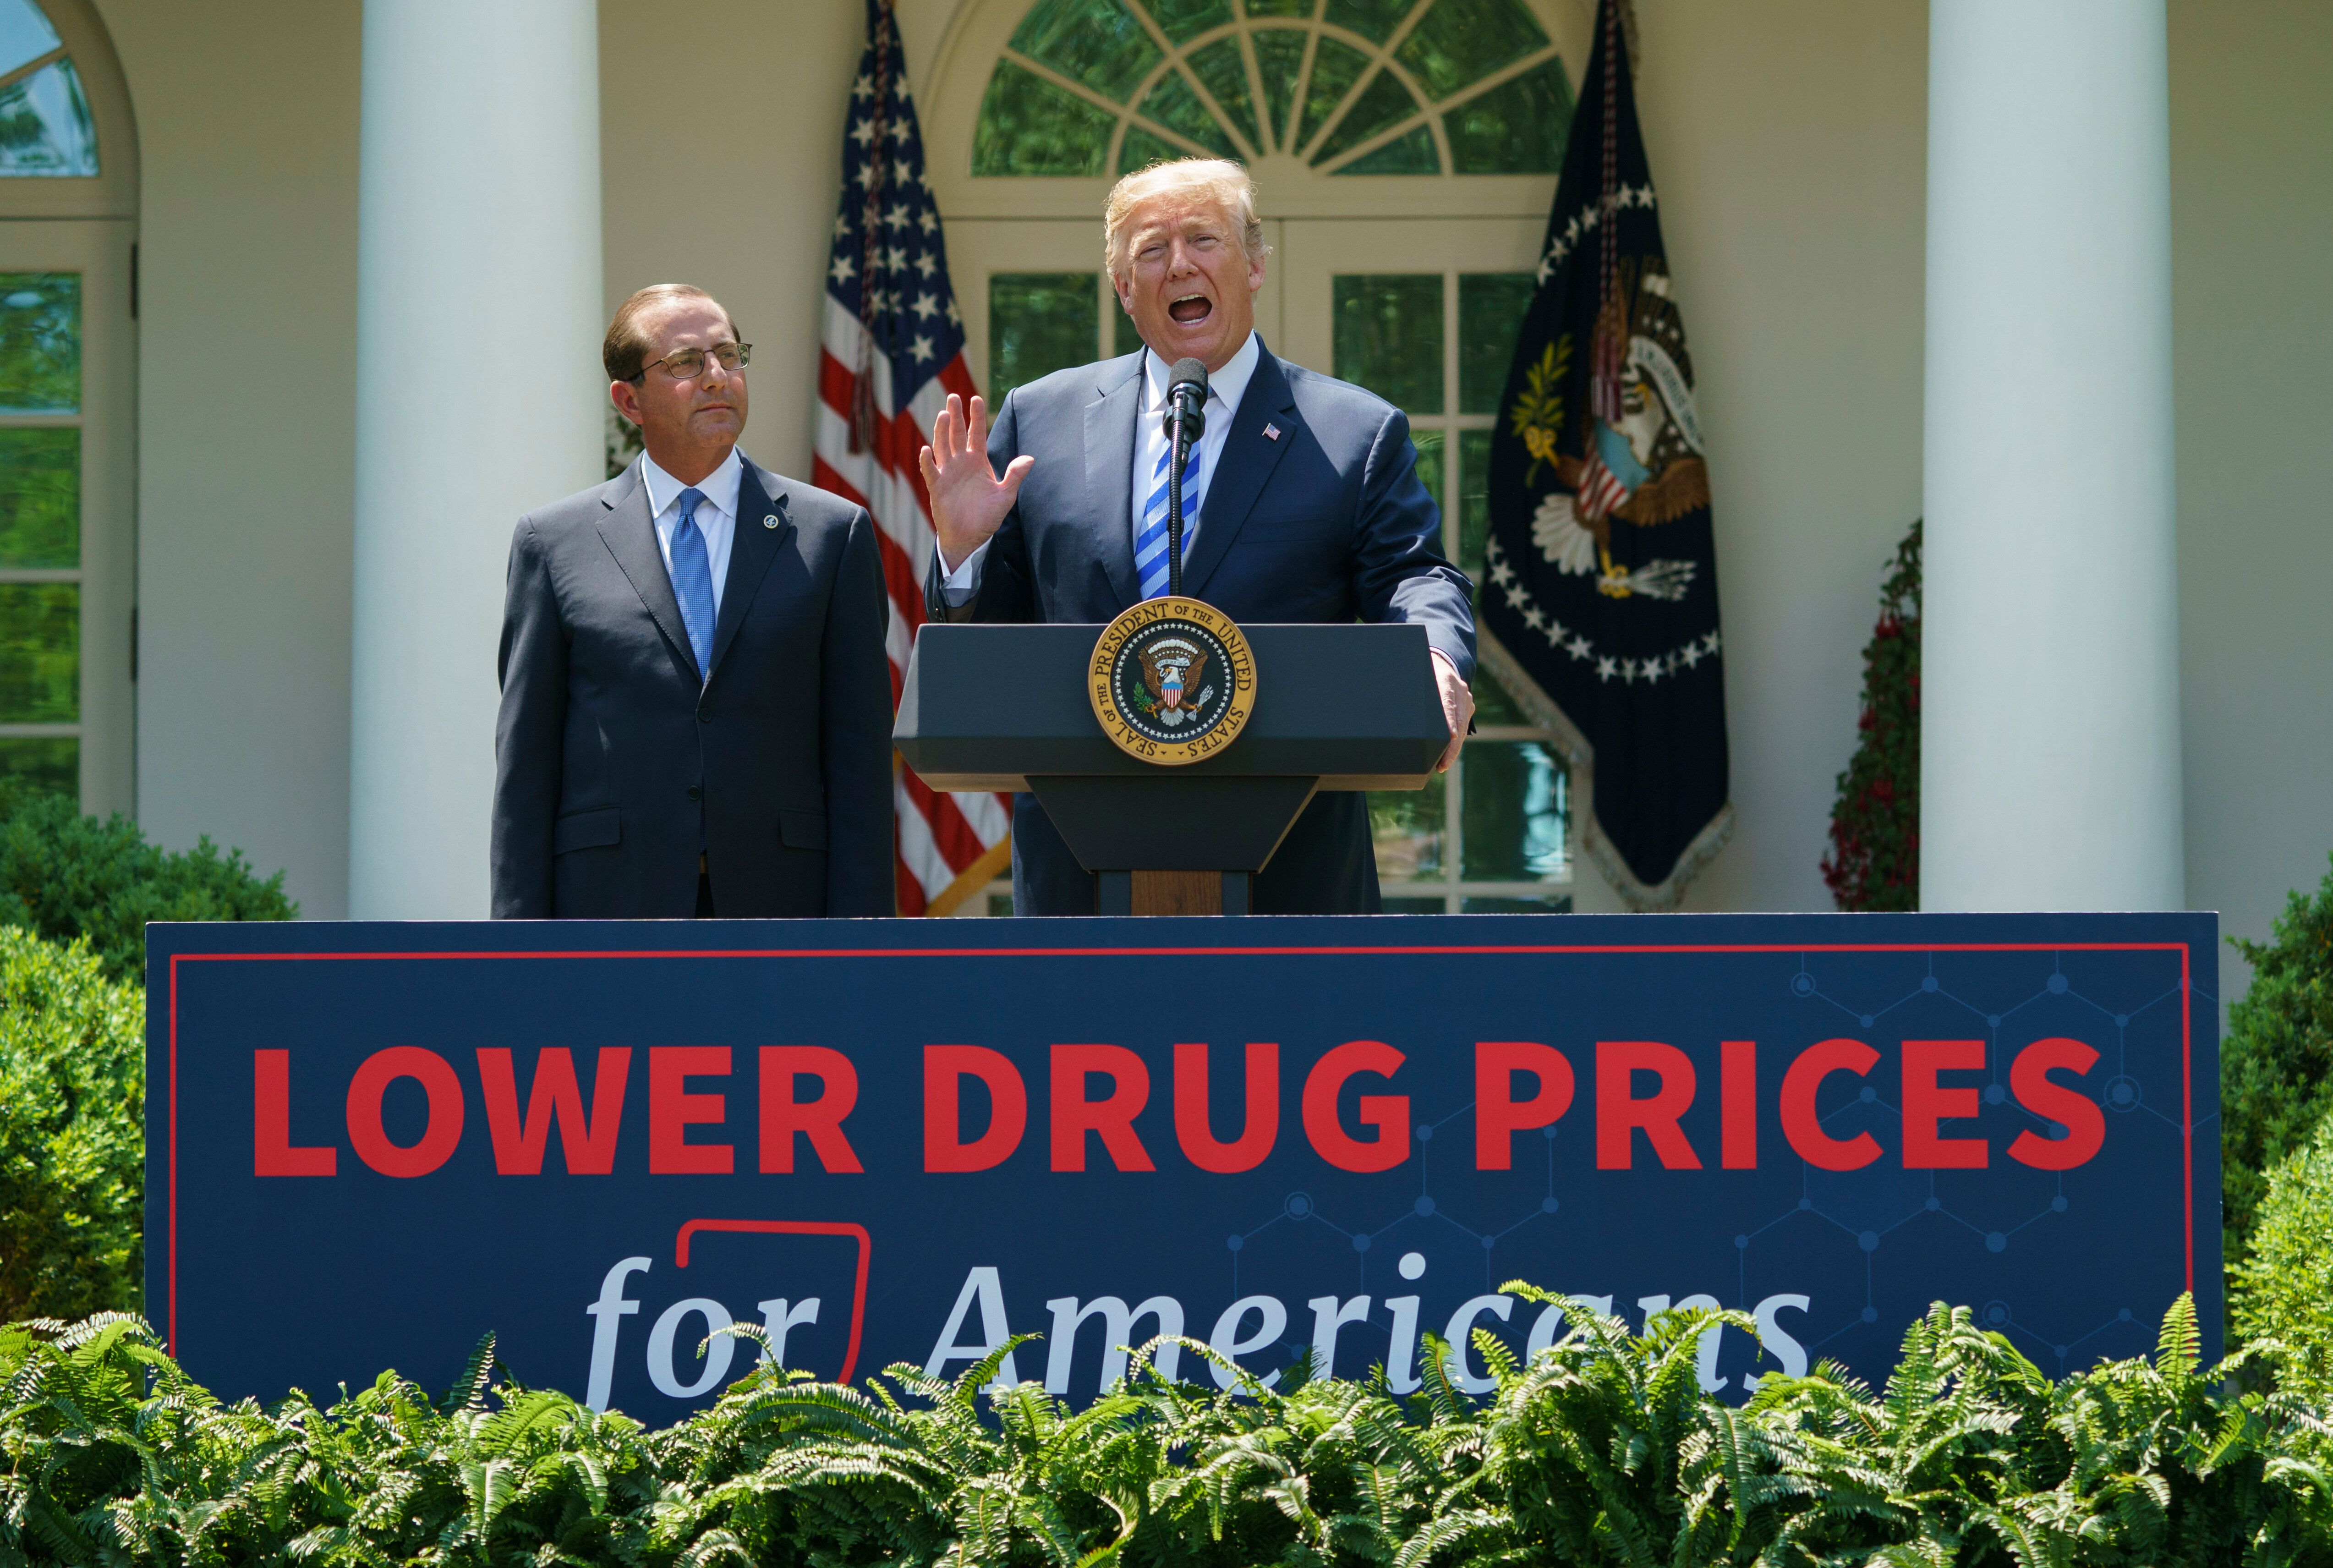 Trump, right, speaks at an event about lowering prescription drug prices. His patent office chief's speech at a fundraiser ba